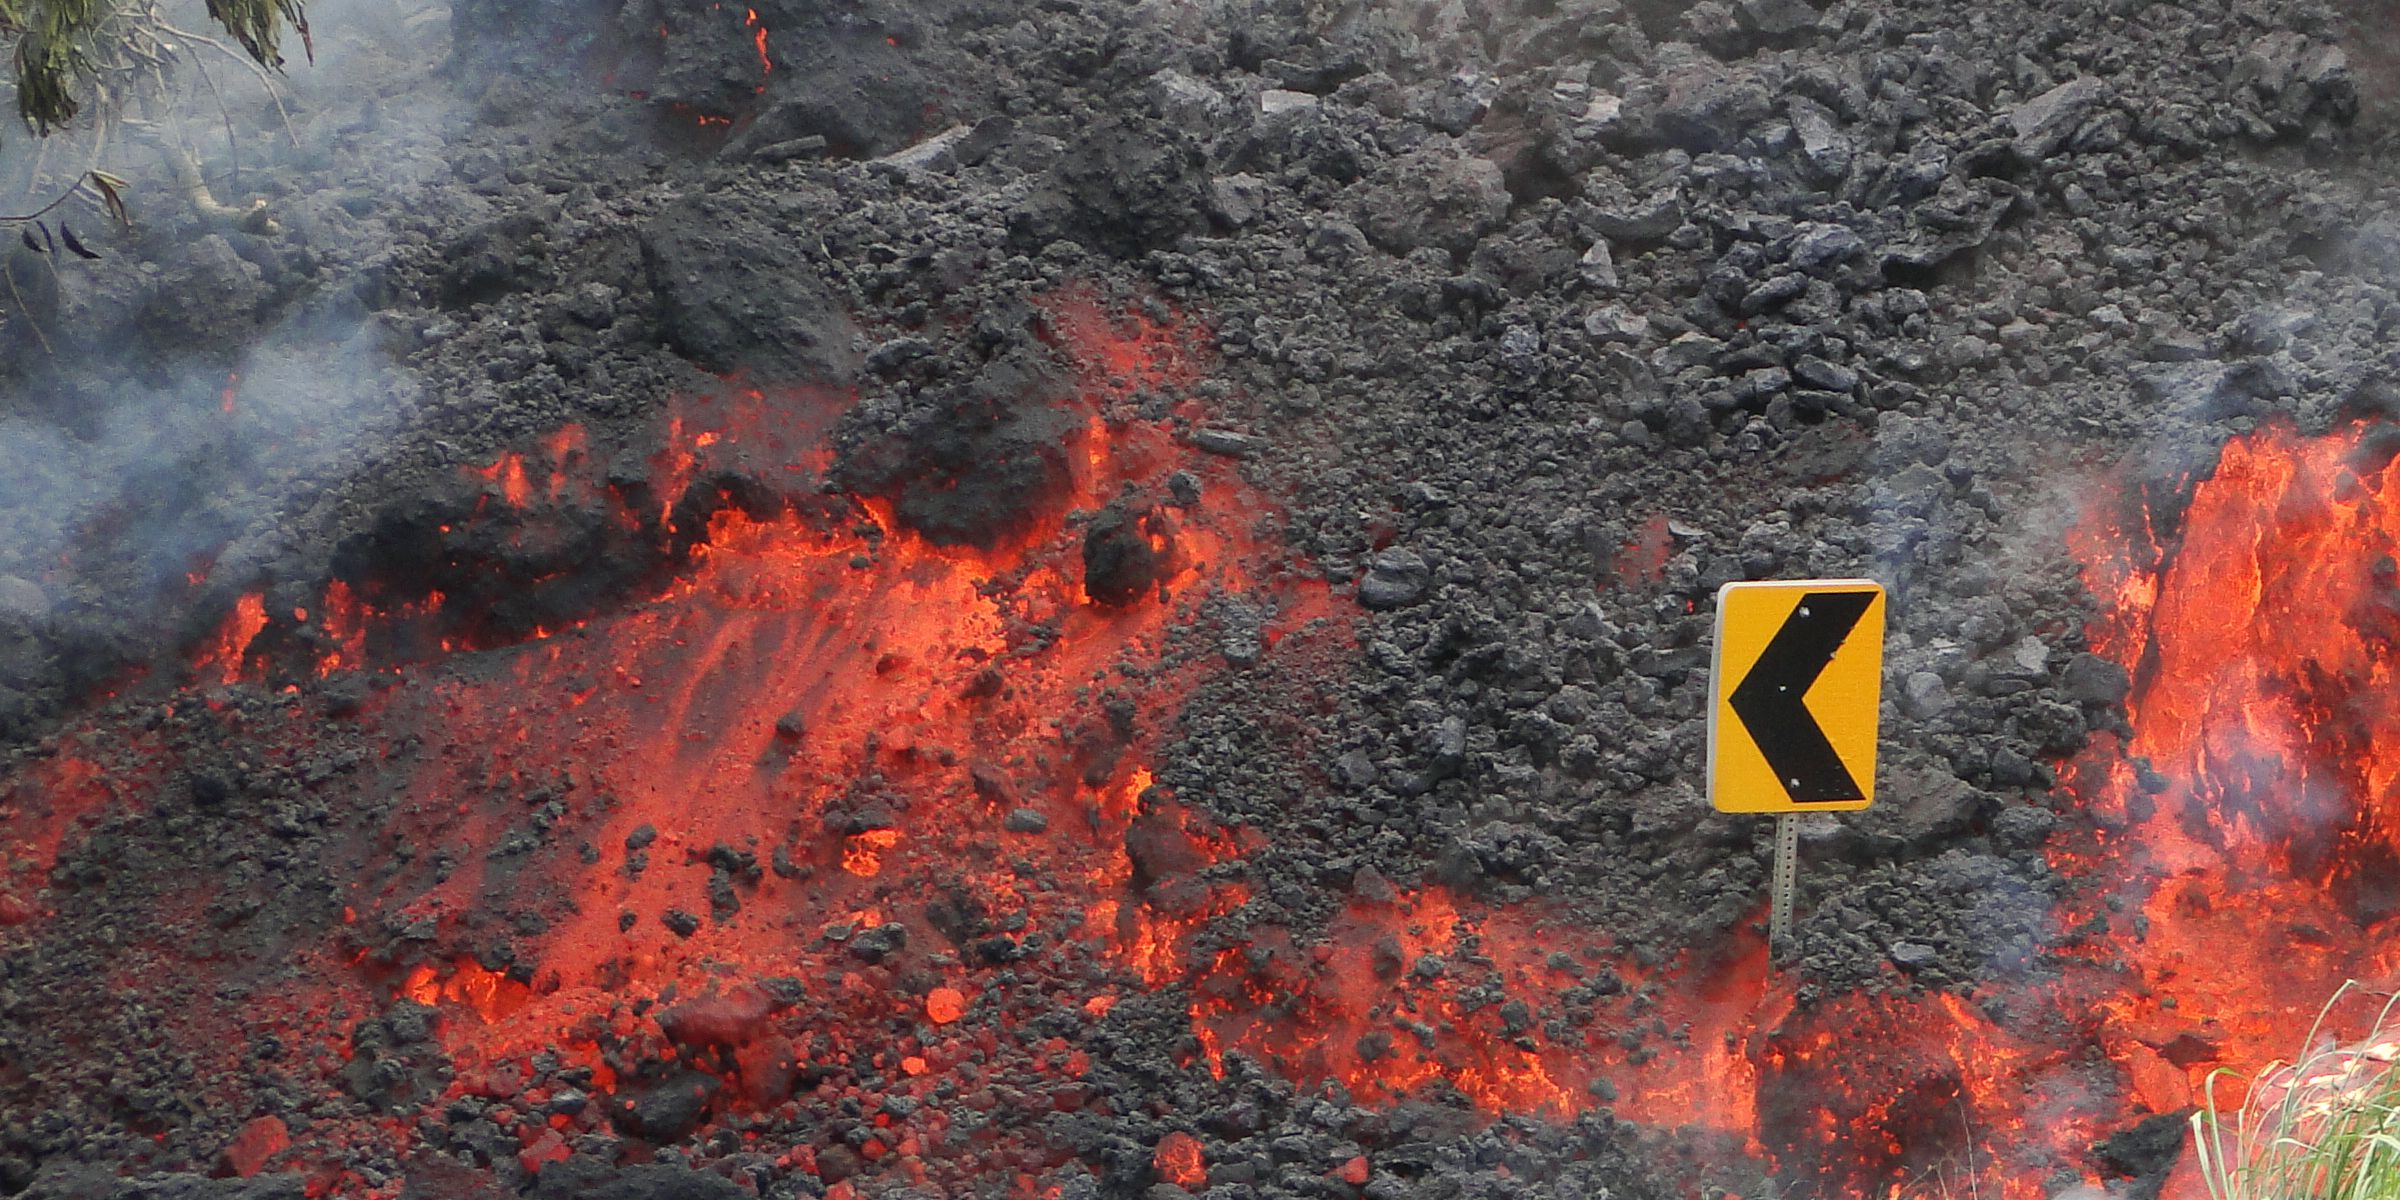 Threat level at Kilauea lowered, signaling the end of an eruptive era